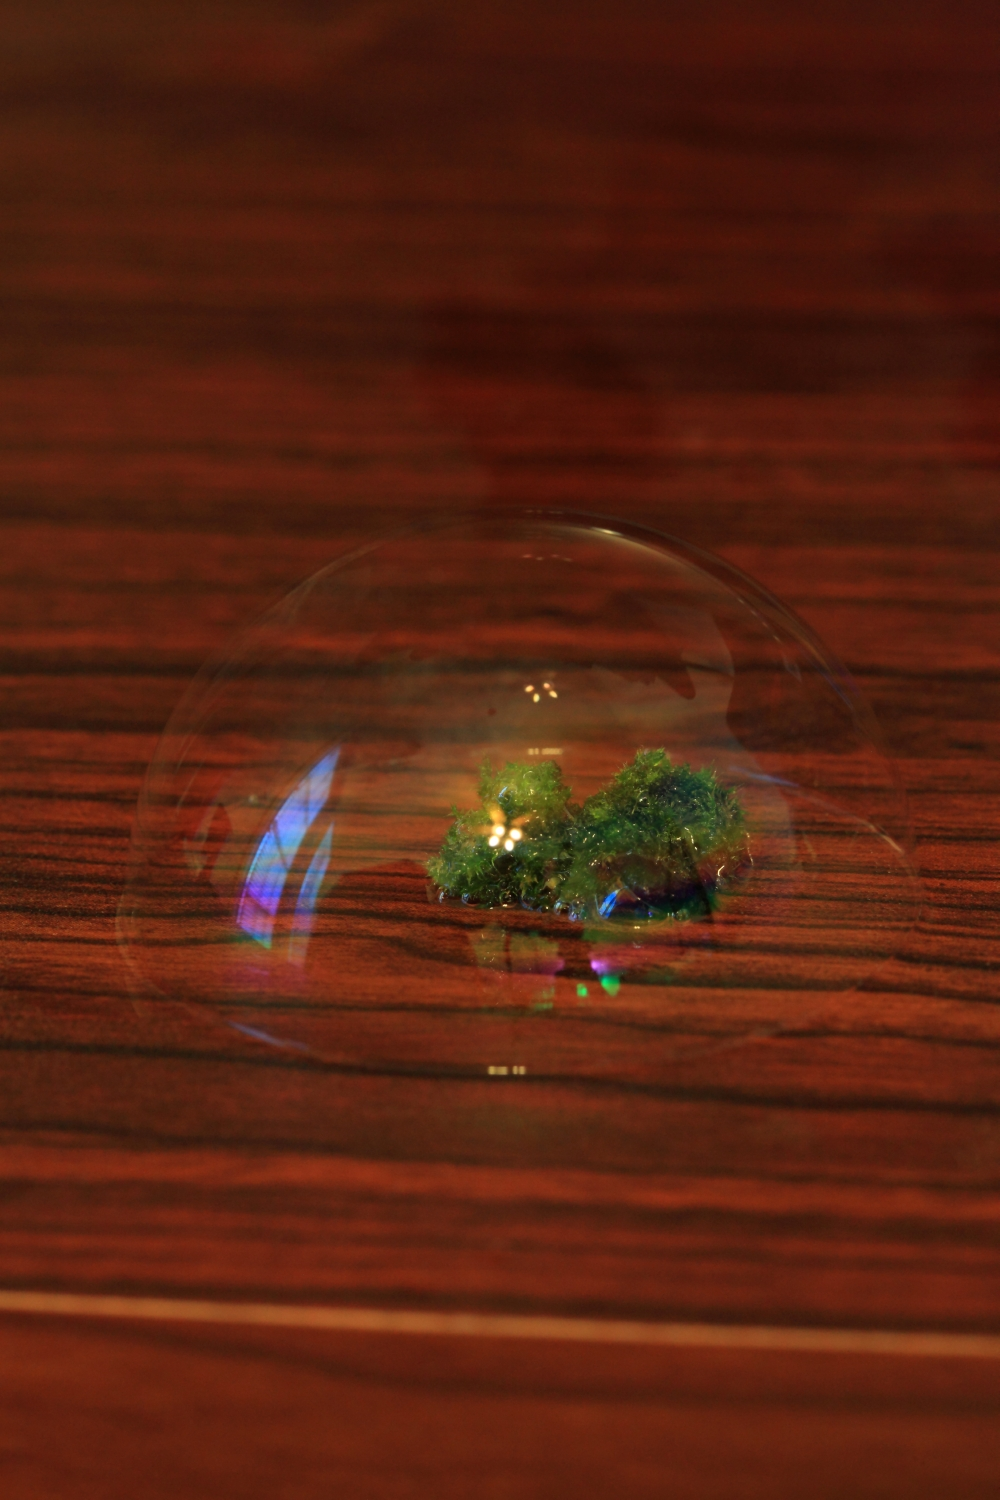 biodome moss in a soap bubble author szulecki jo joshua